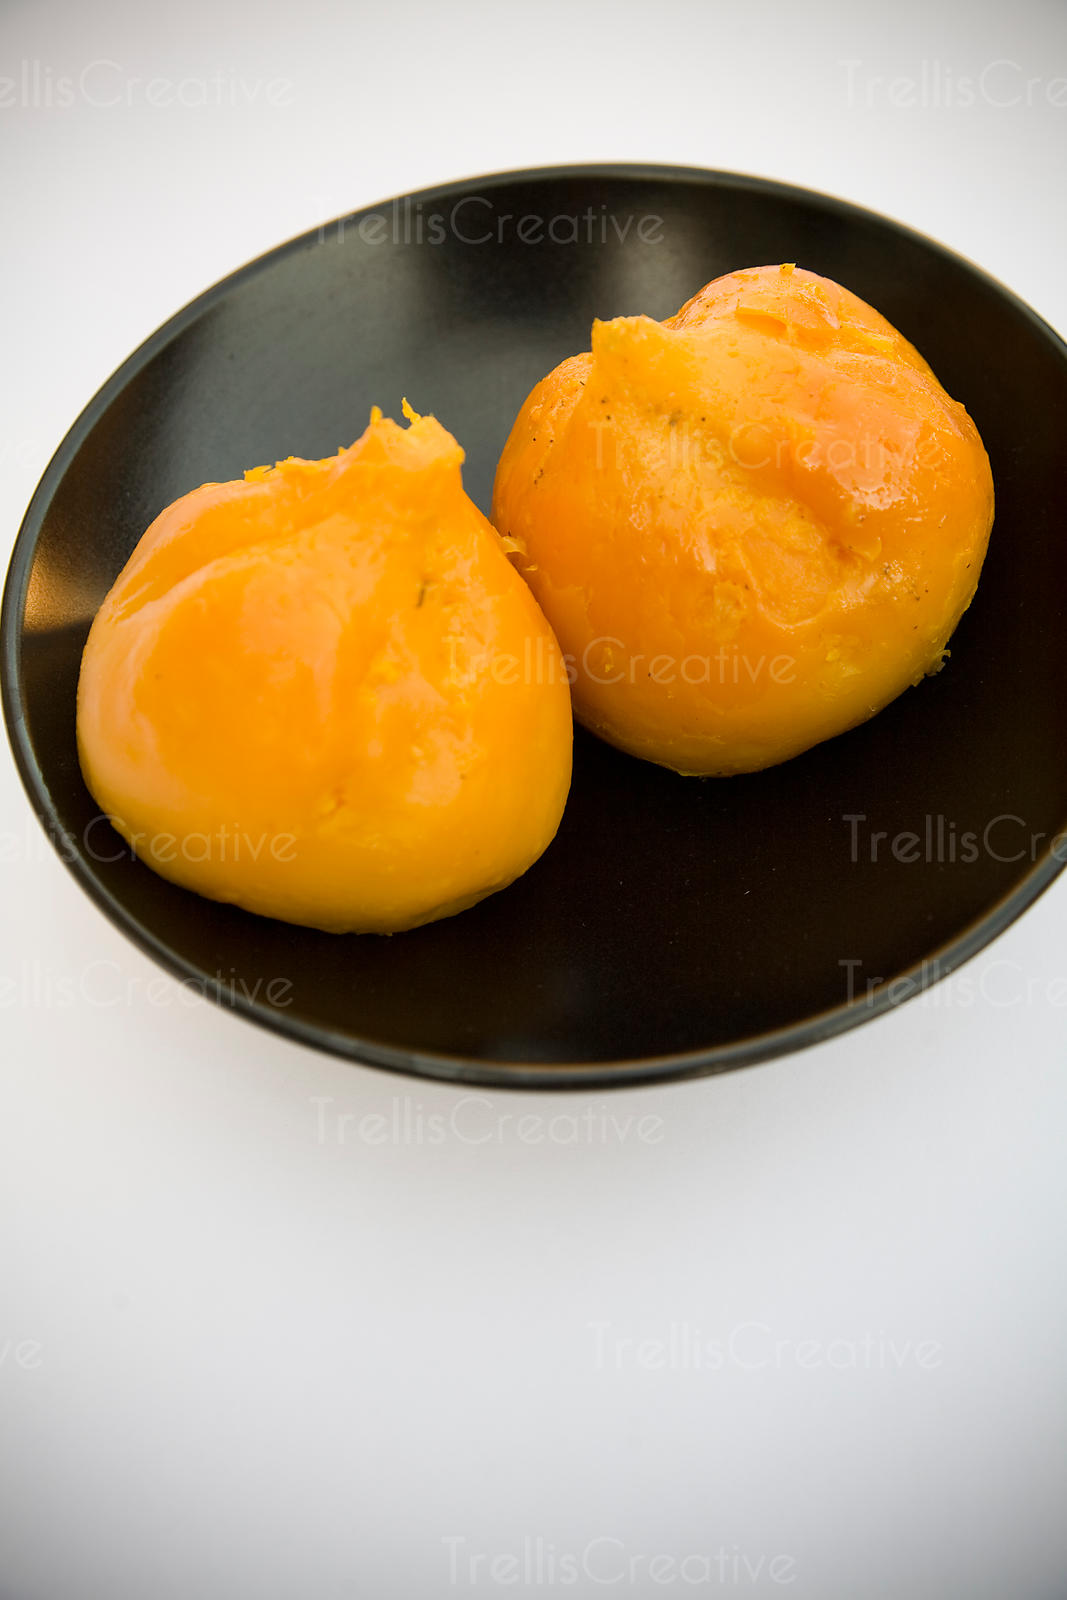 Two golden yellow roasted and peeled beets in a dark bowl